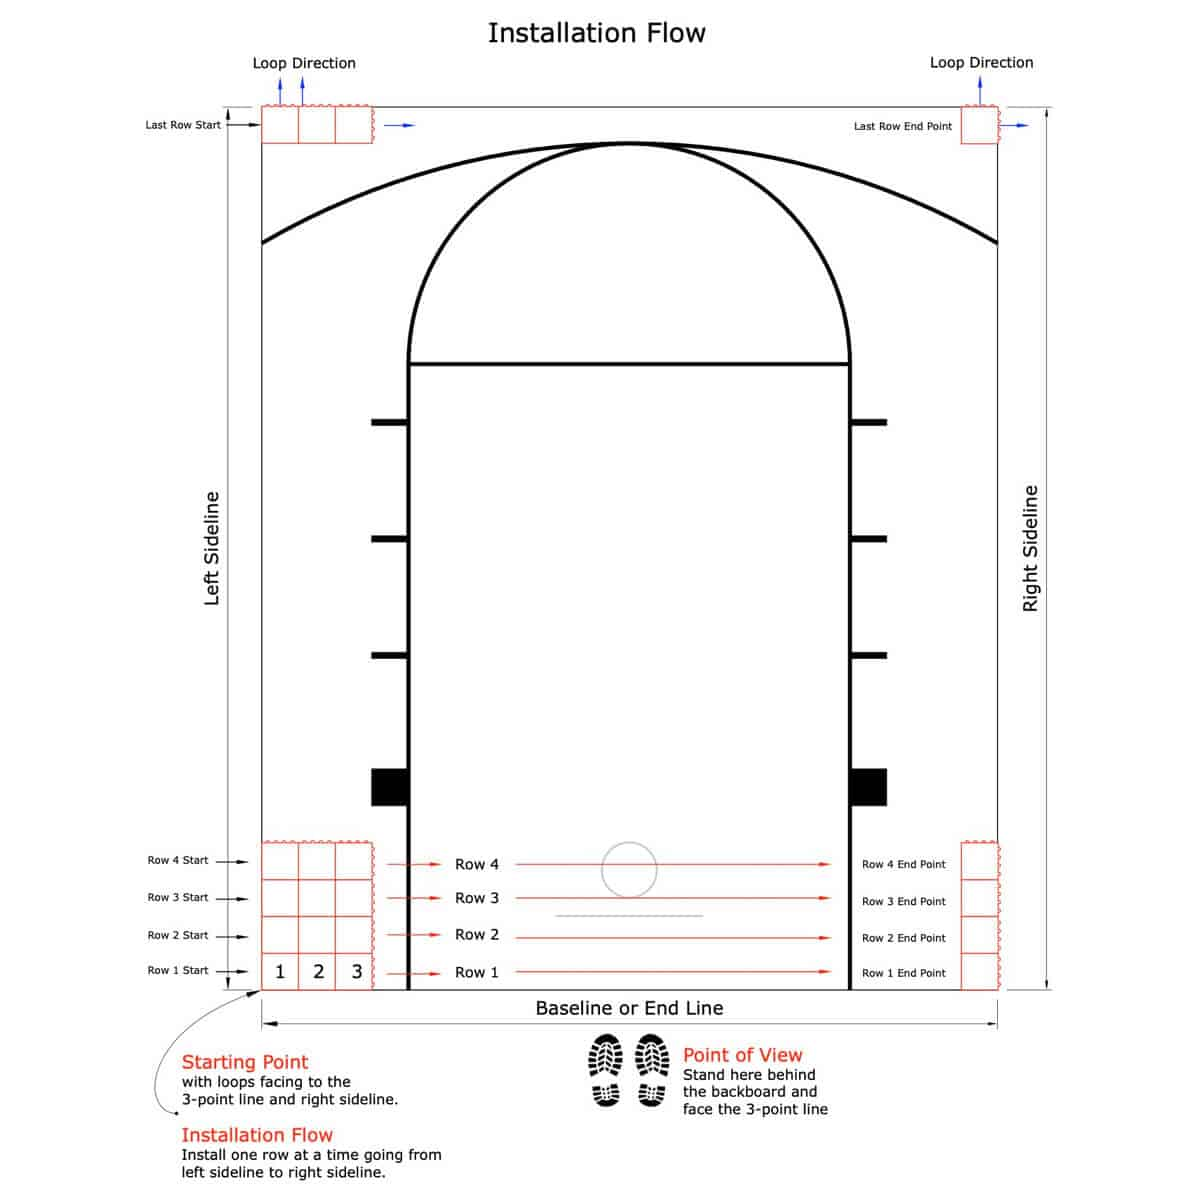 Installation Flow - How to Install backyard basketball court